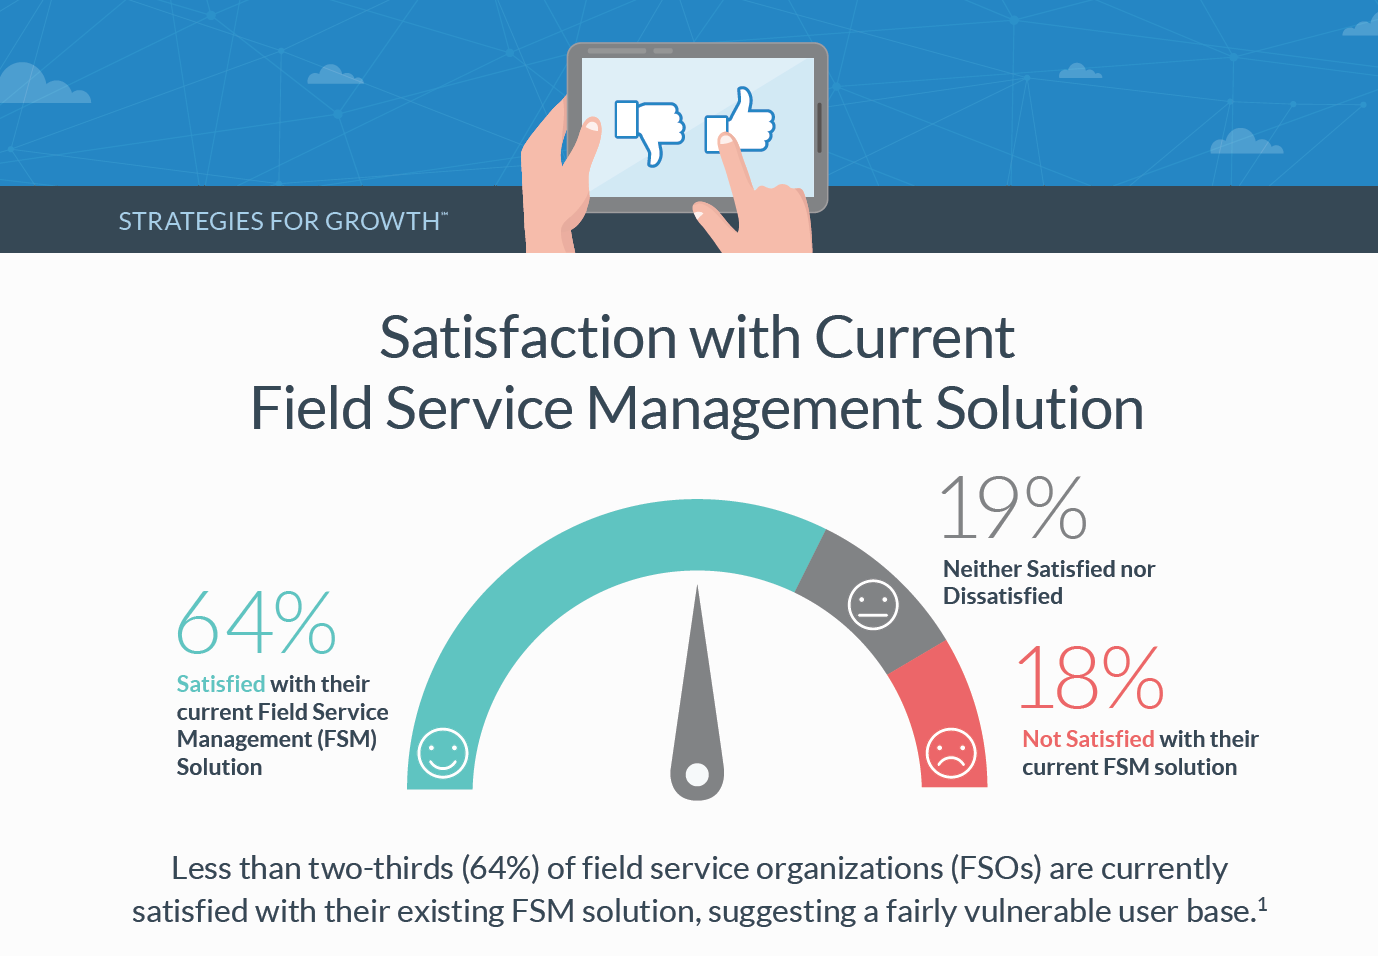 Satisfaction with Current Field Service Management Solution